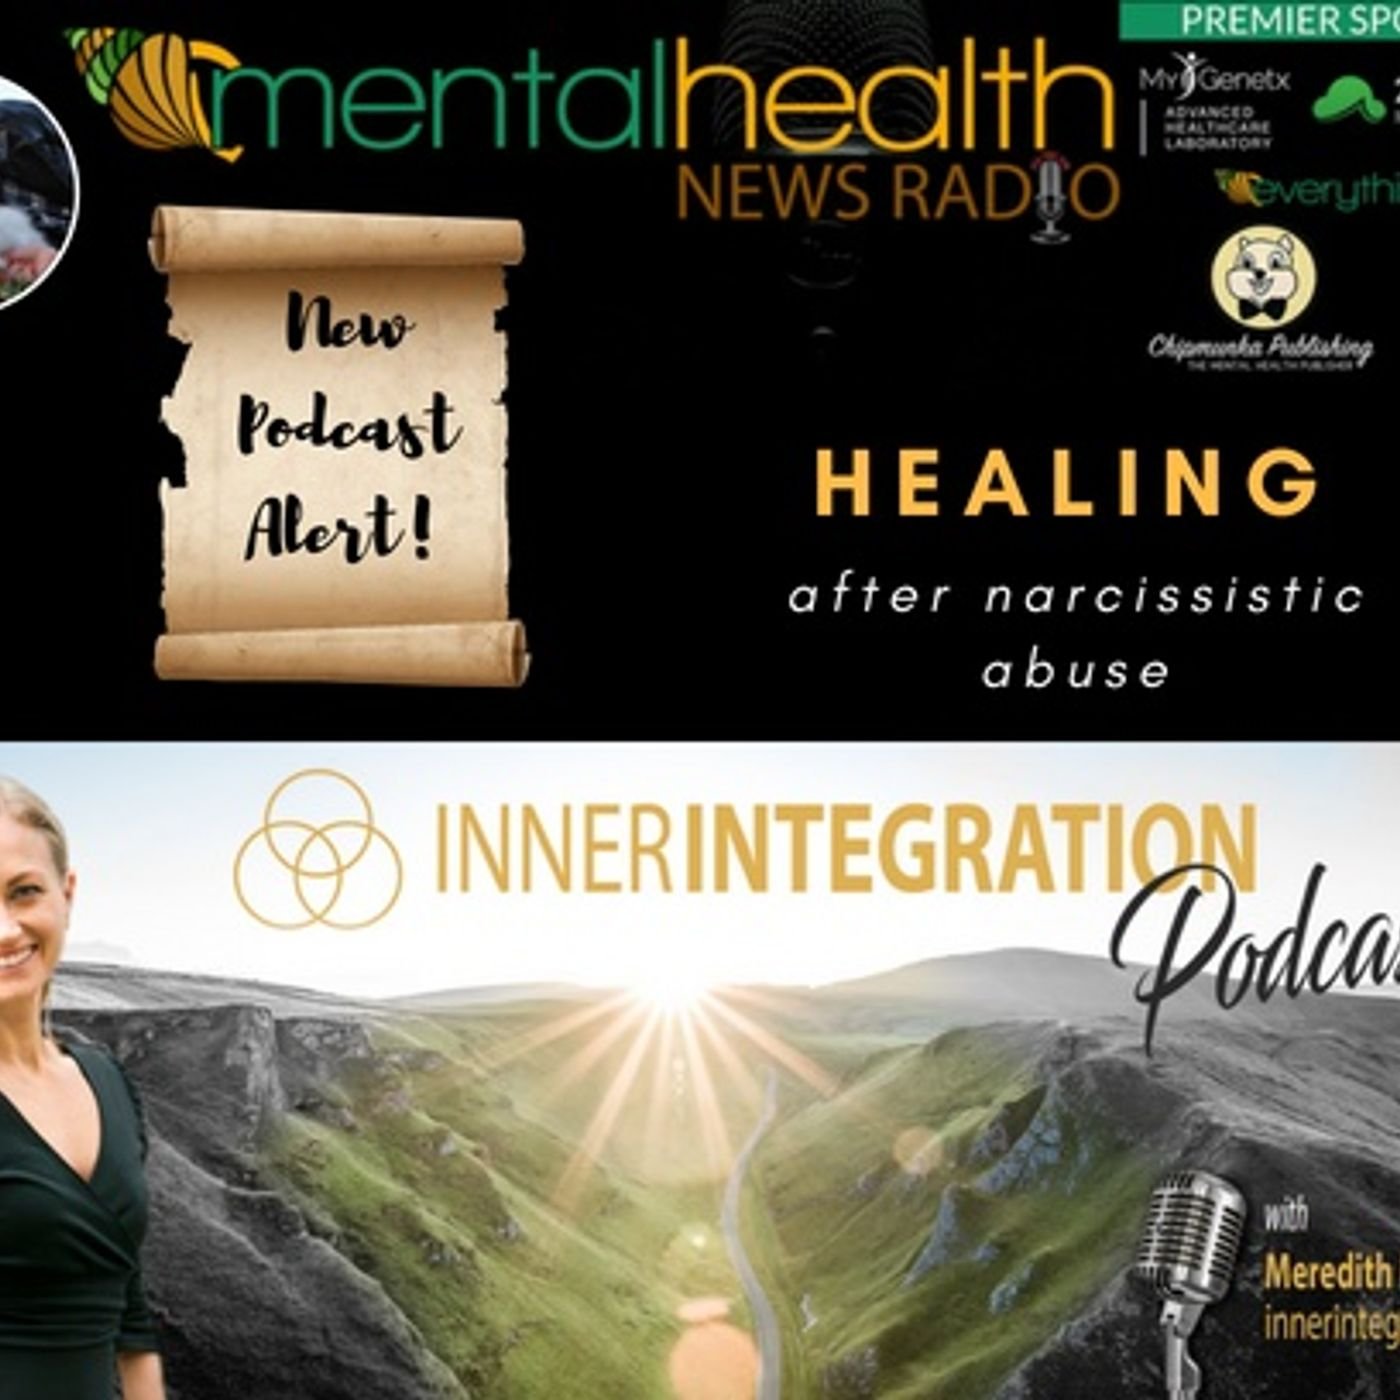 Mental Health News Radio - Inner Integration with Meredith Miller: Healing After Narcissistic Abuse